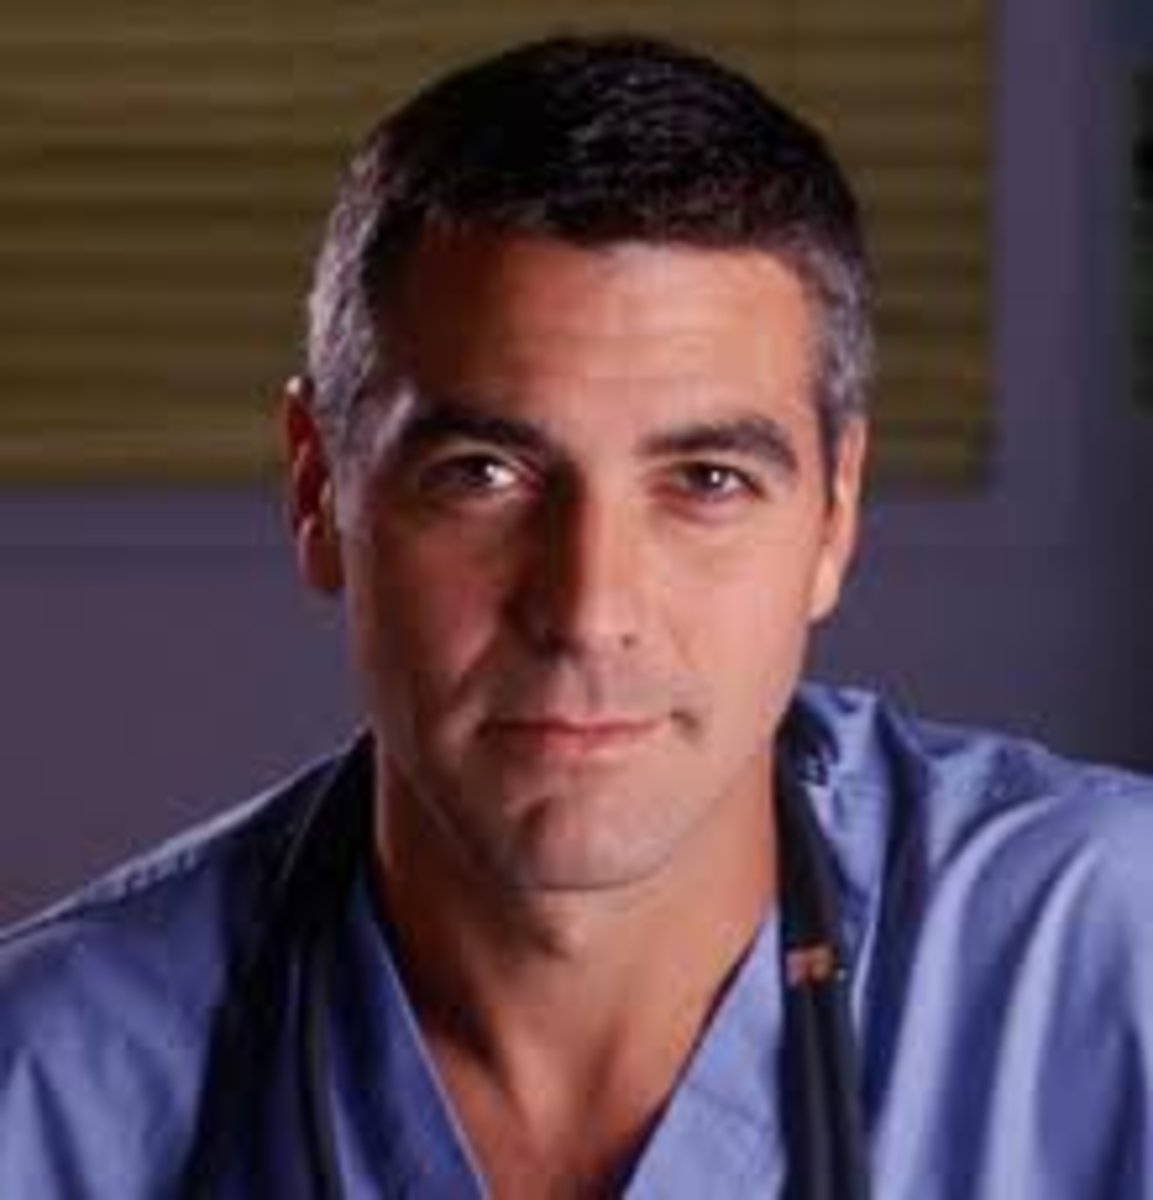 Handsome George Clooney!  Give him a show and I will watch every day!